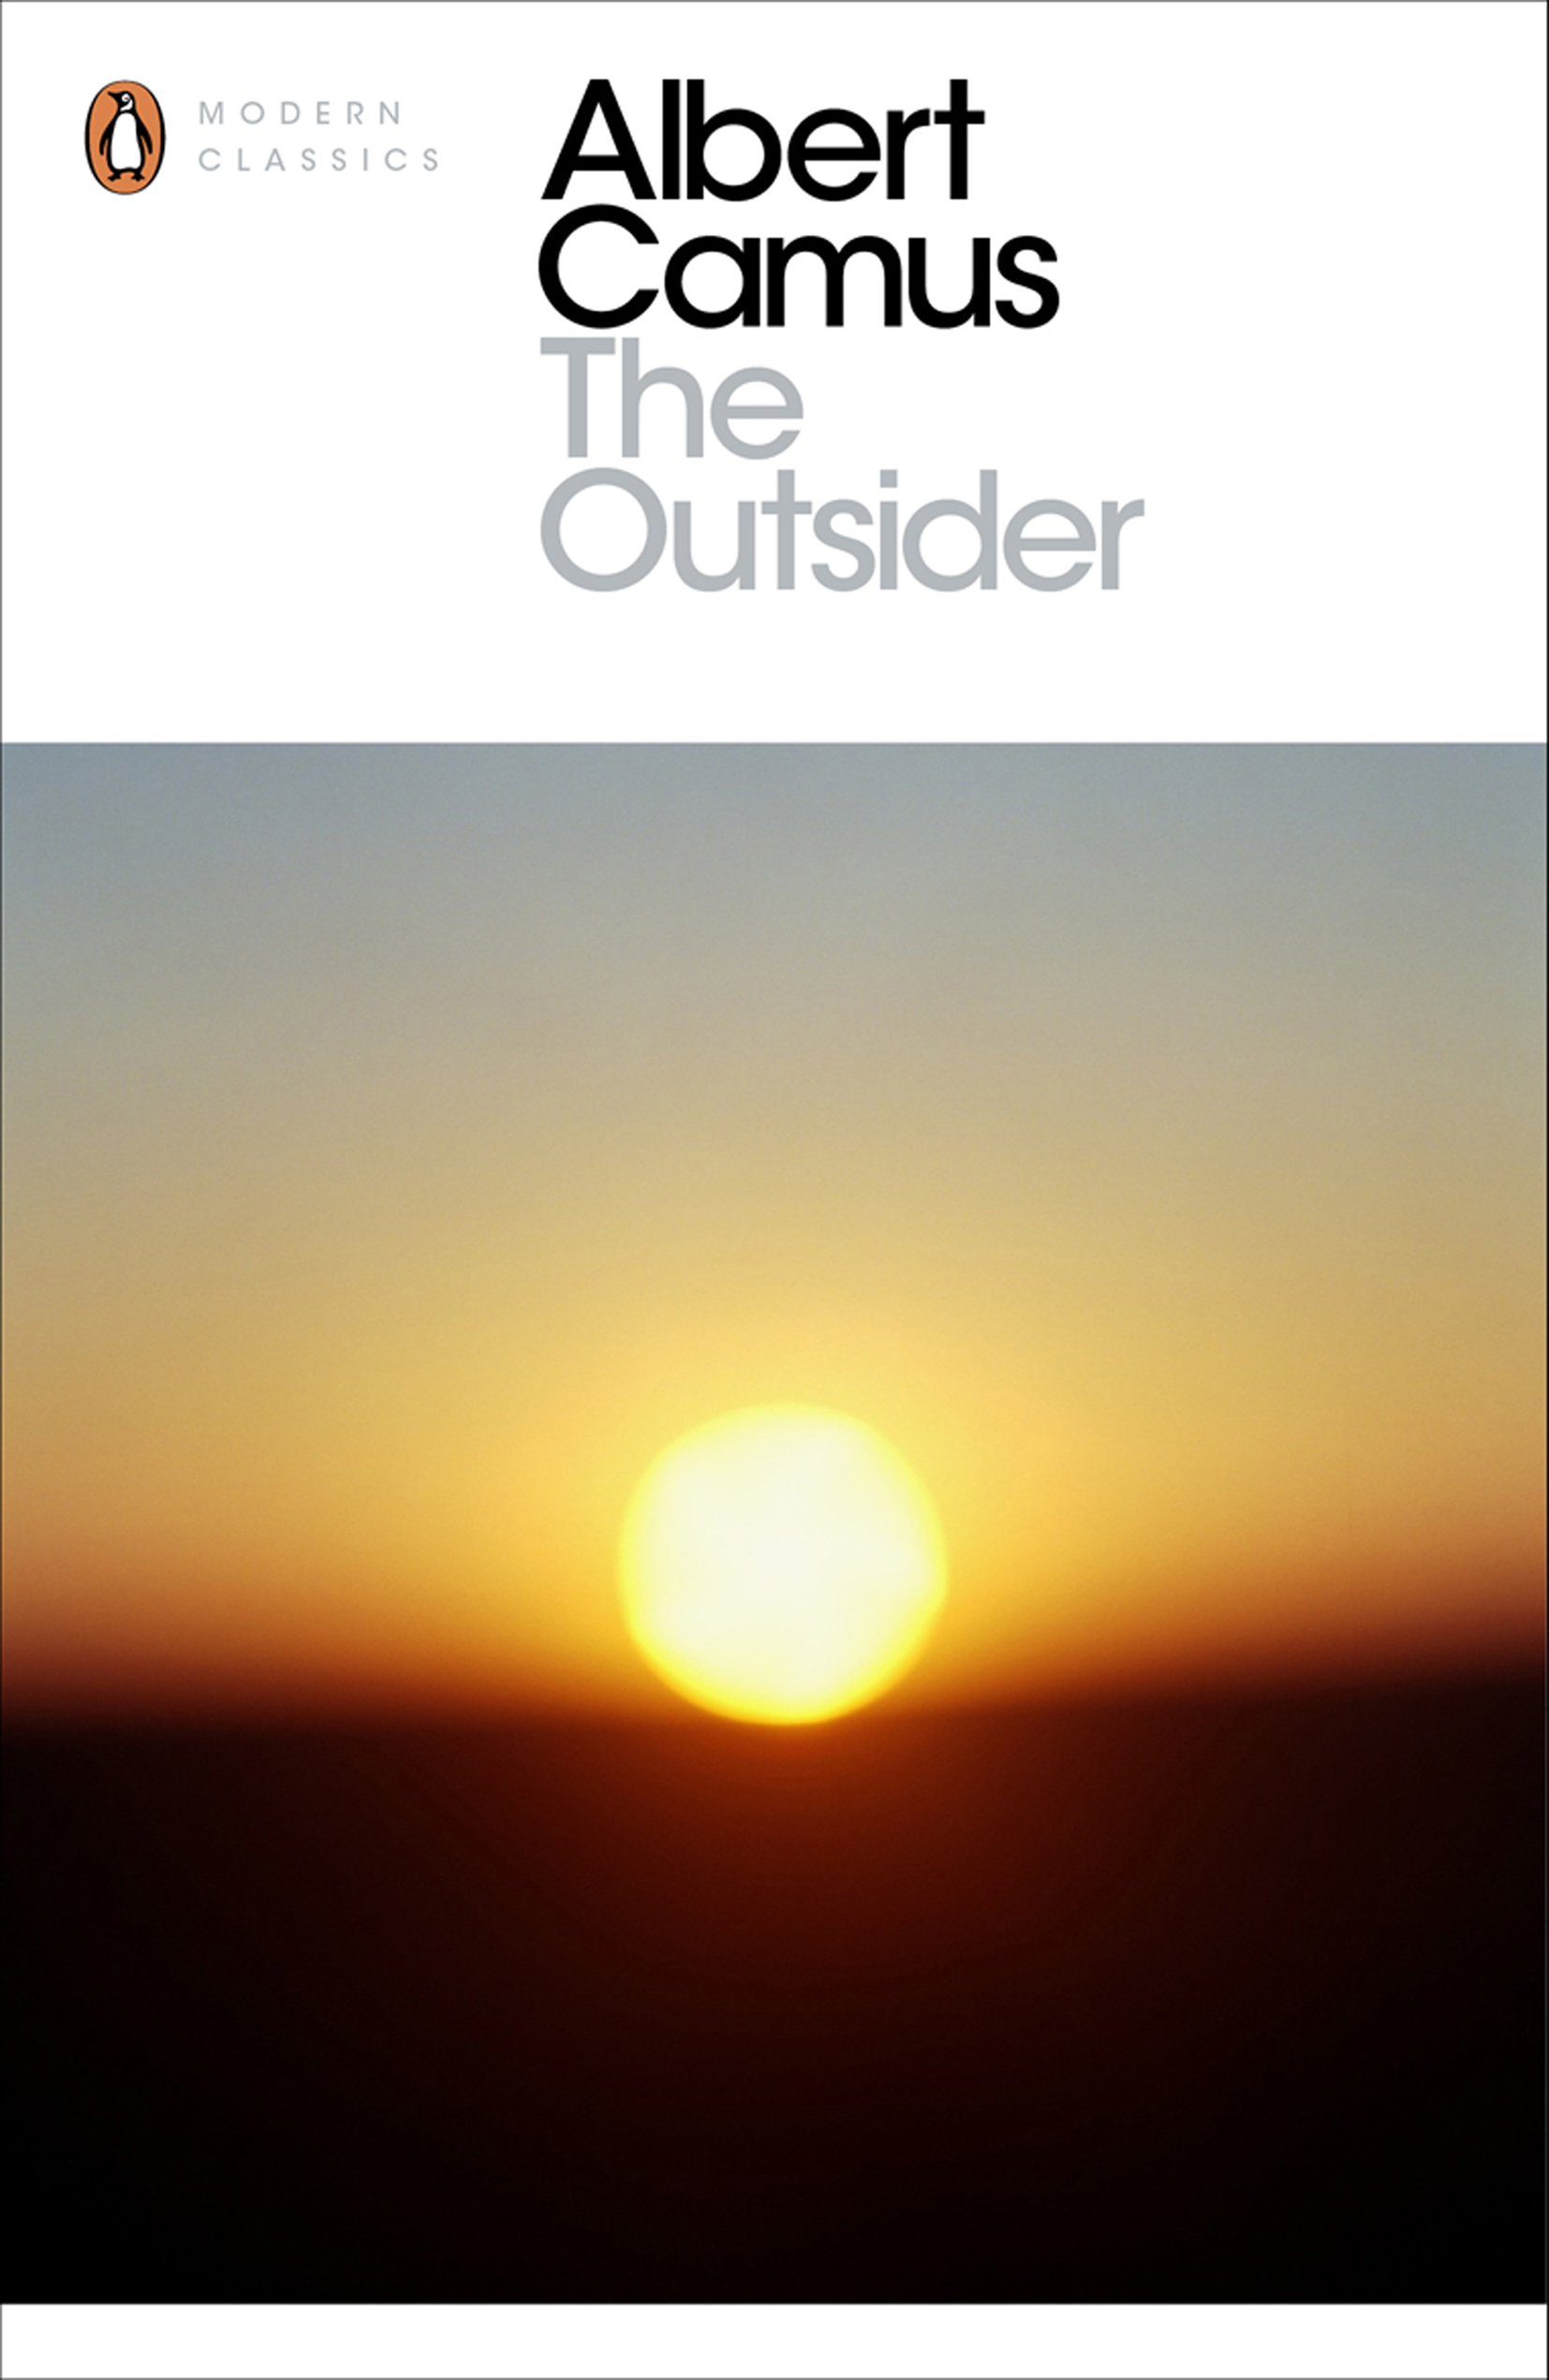 The Outsider by Albert Camus, ISBN: 9780141198064